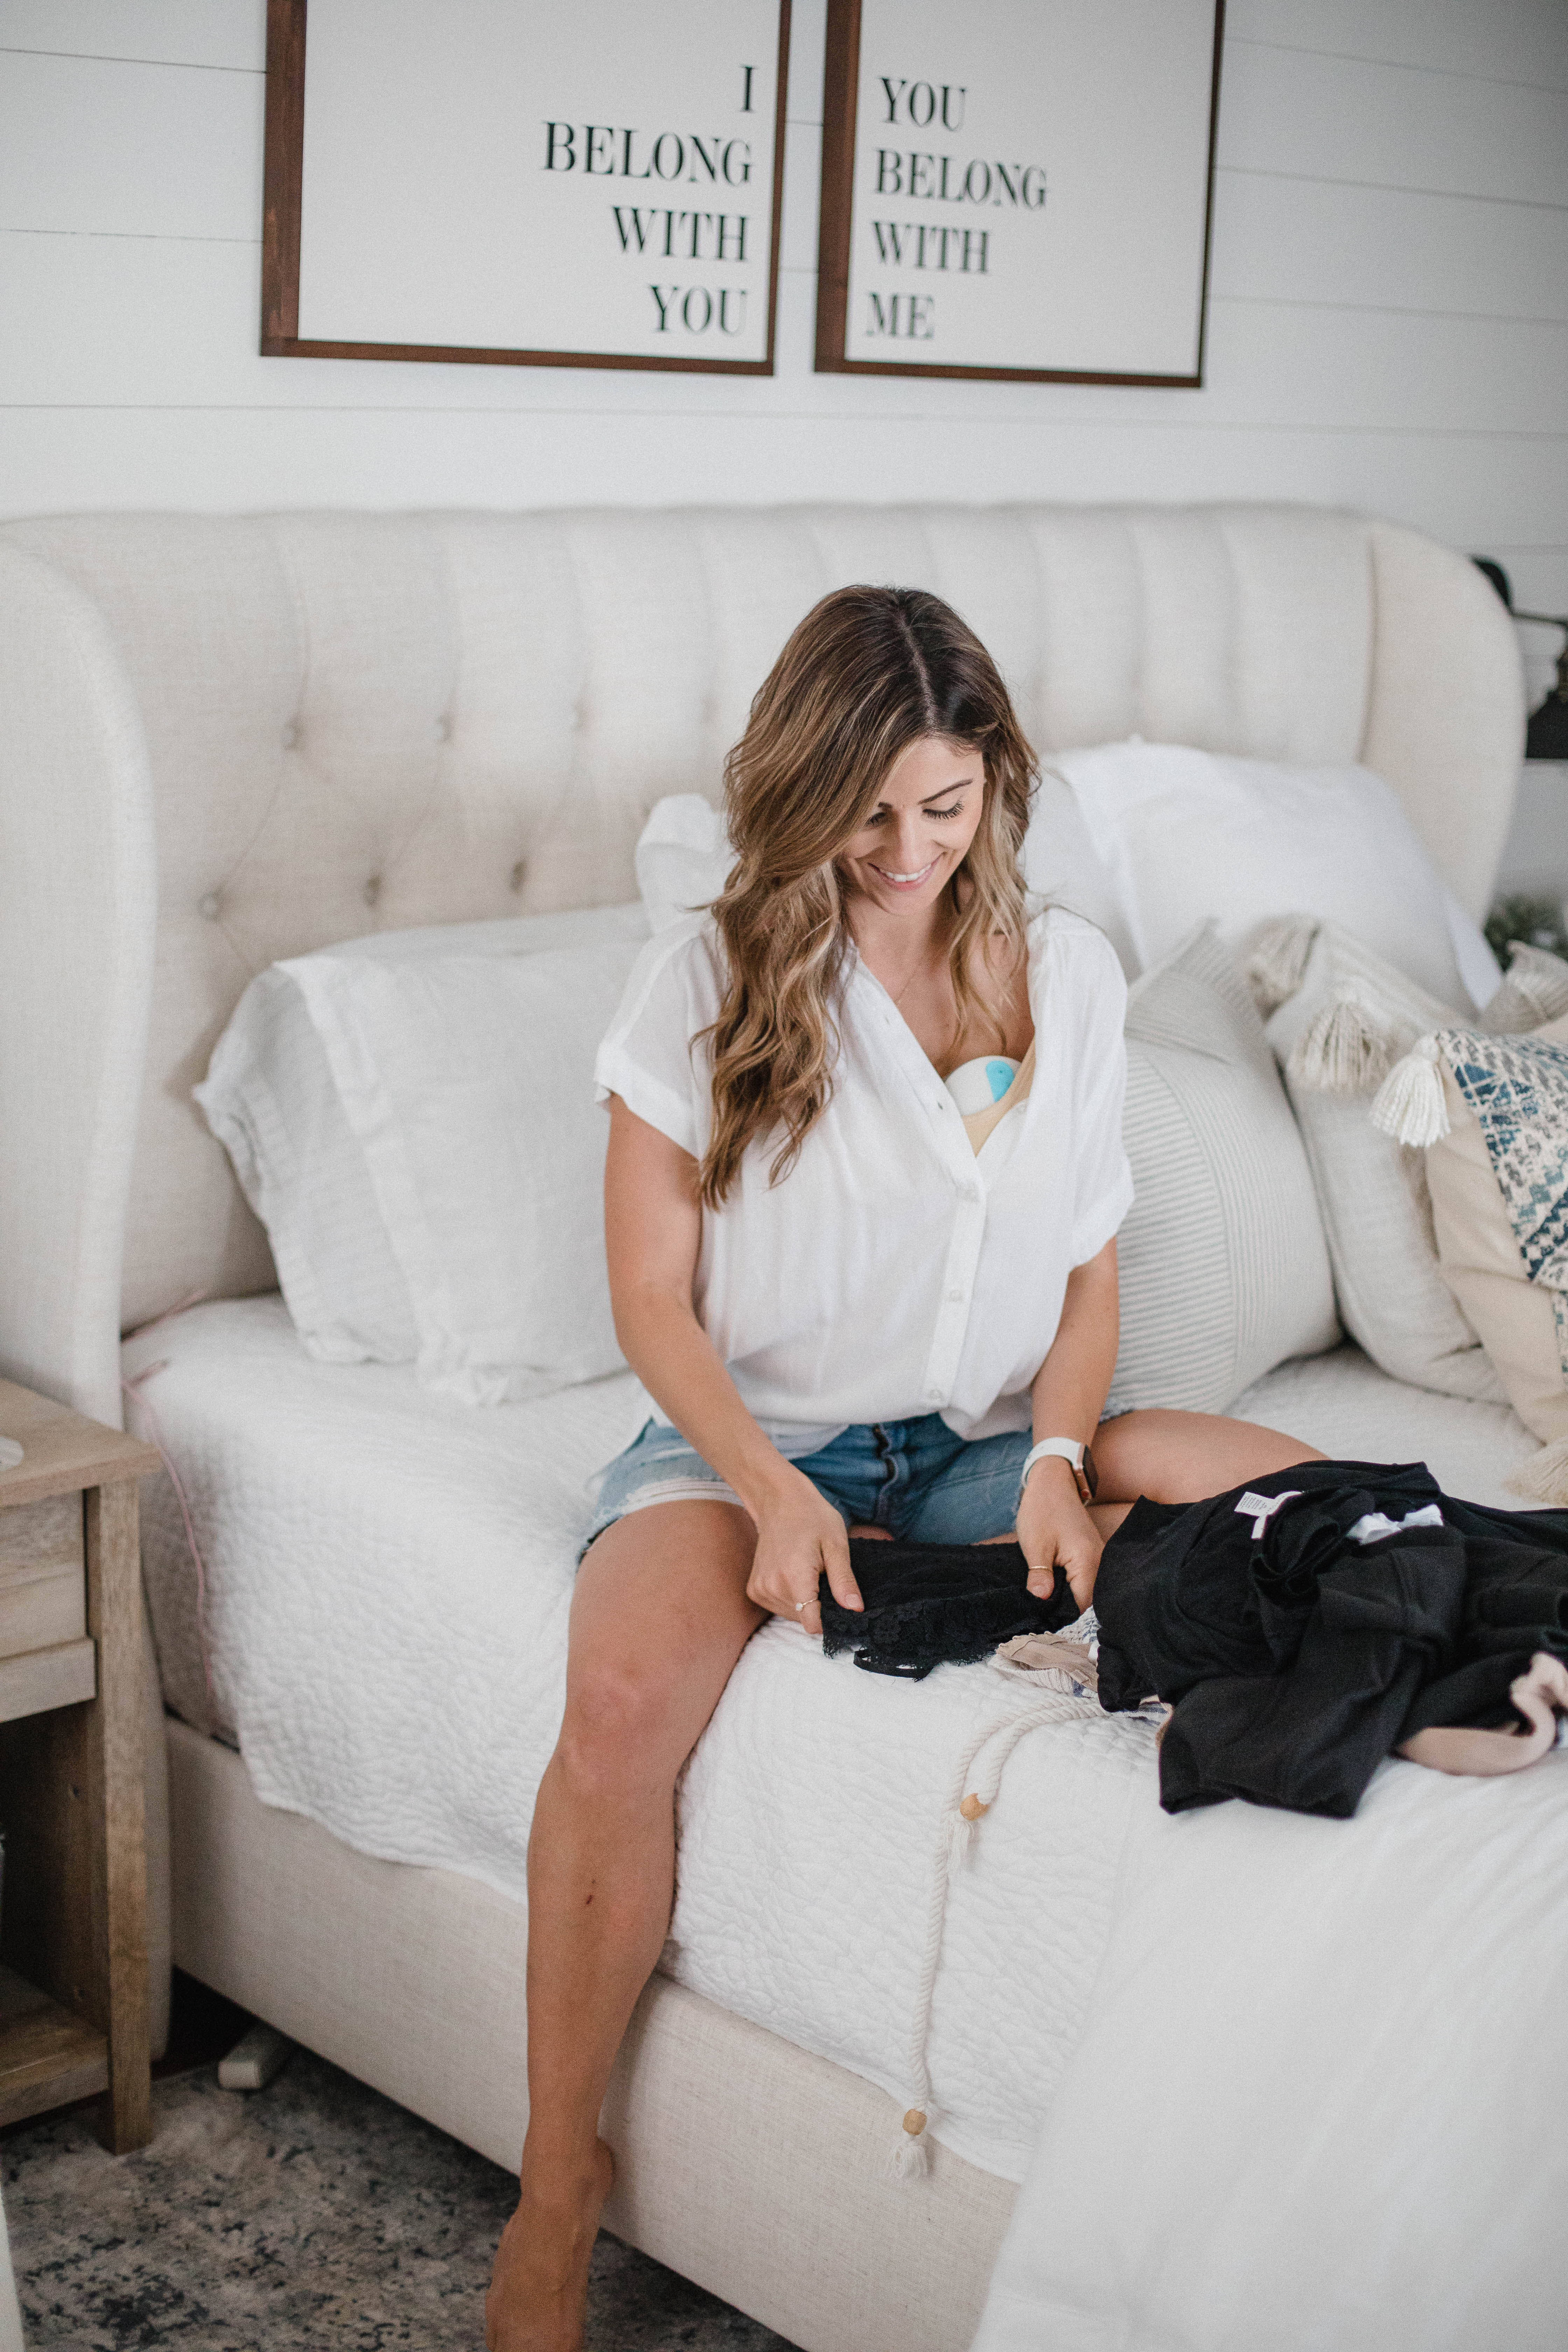 Connecticut life and style blogger Lauren McBride shares her Willow Pump Review, including details about the Willow Wearable Breast Pump and information you should know as a consumer.